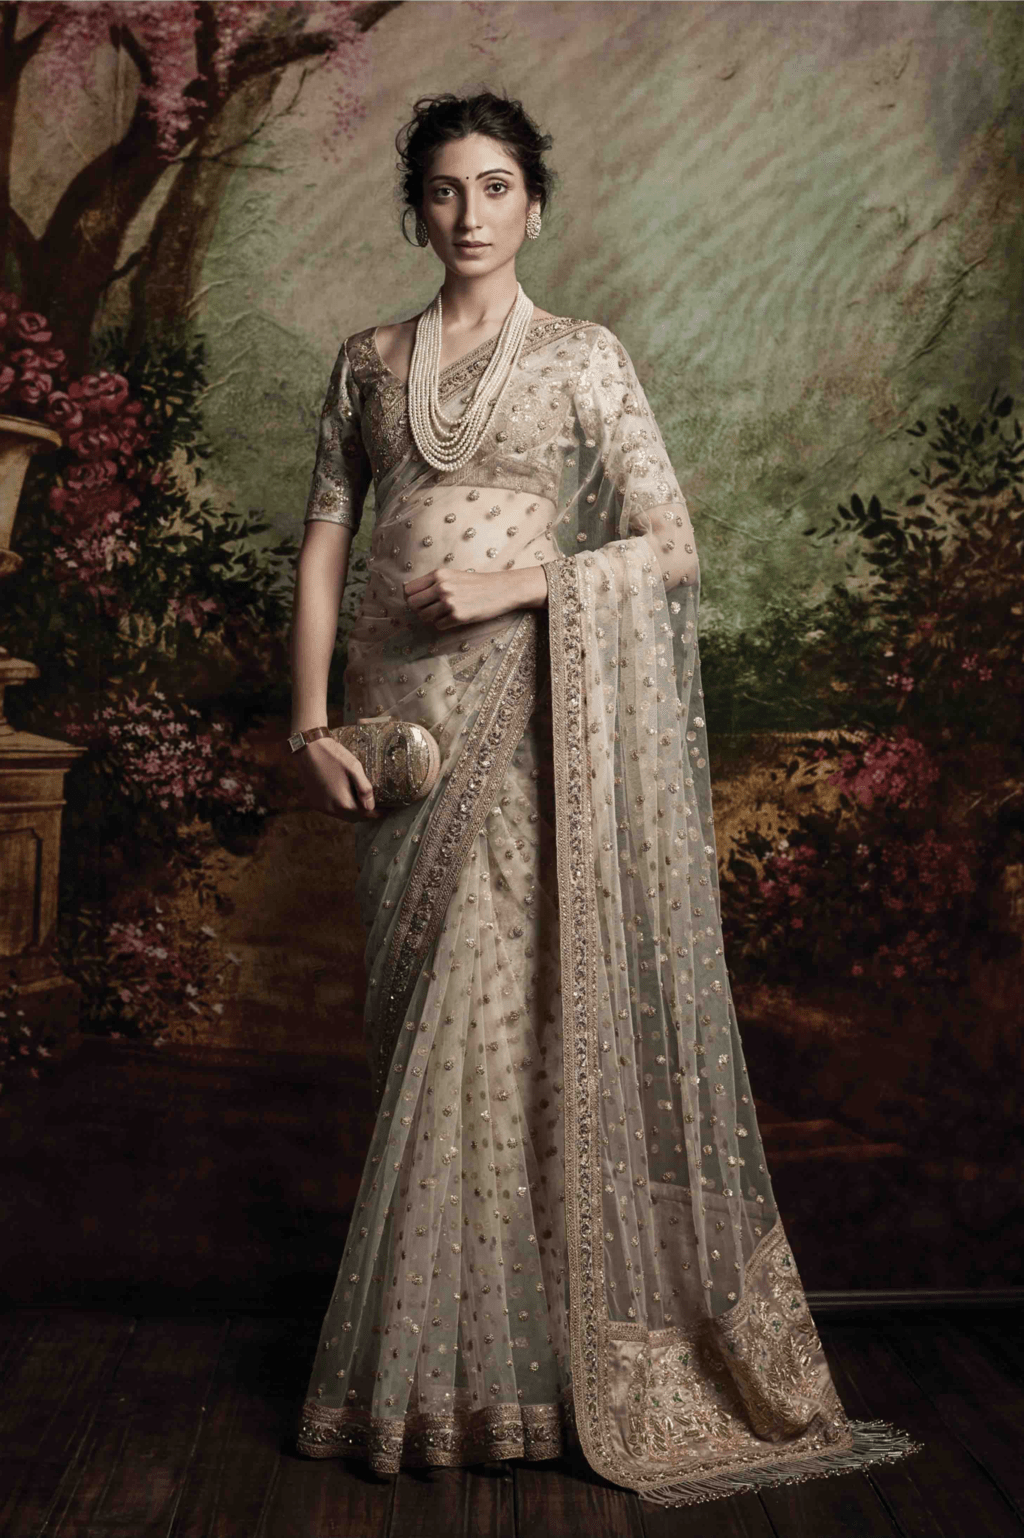 Sabyasachi outfit cost